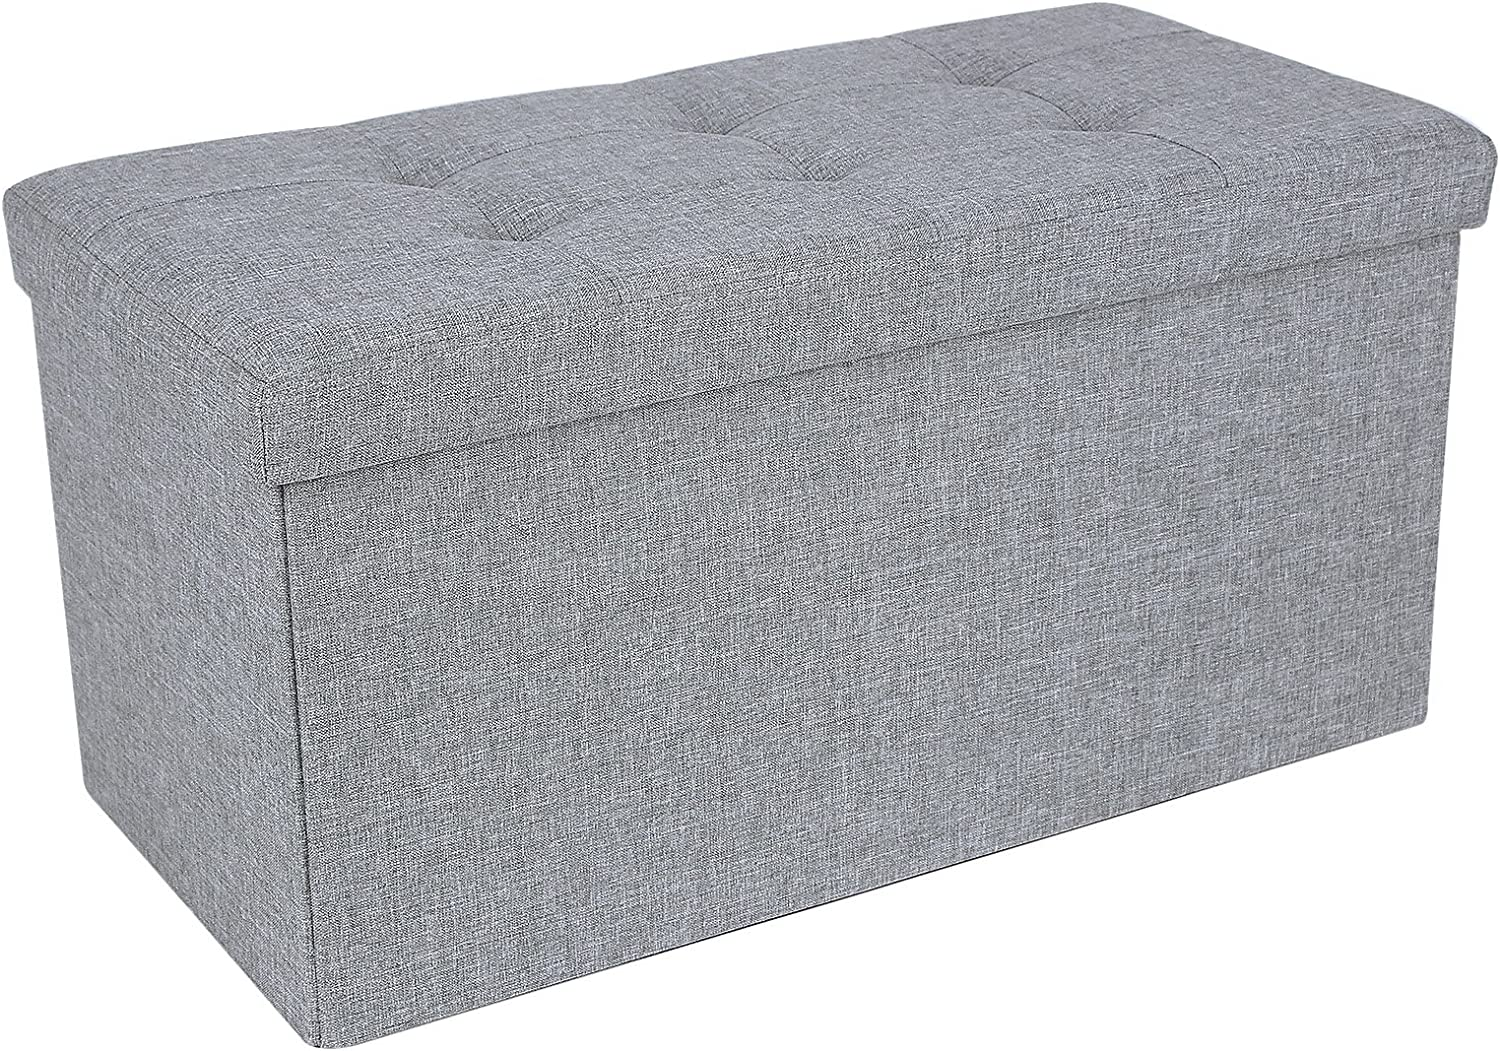 SONGMICS Storage Ottoman Bench, Chest with Lid, Foldable Seat, Bedroom, Hallway, Space-Saving, 80L Capacity, Hold up to 660 lb, 30 x 15 x 15 Inches, Light Gray ULSF47G